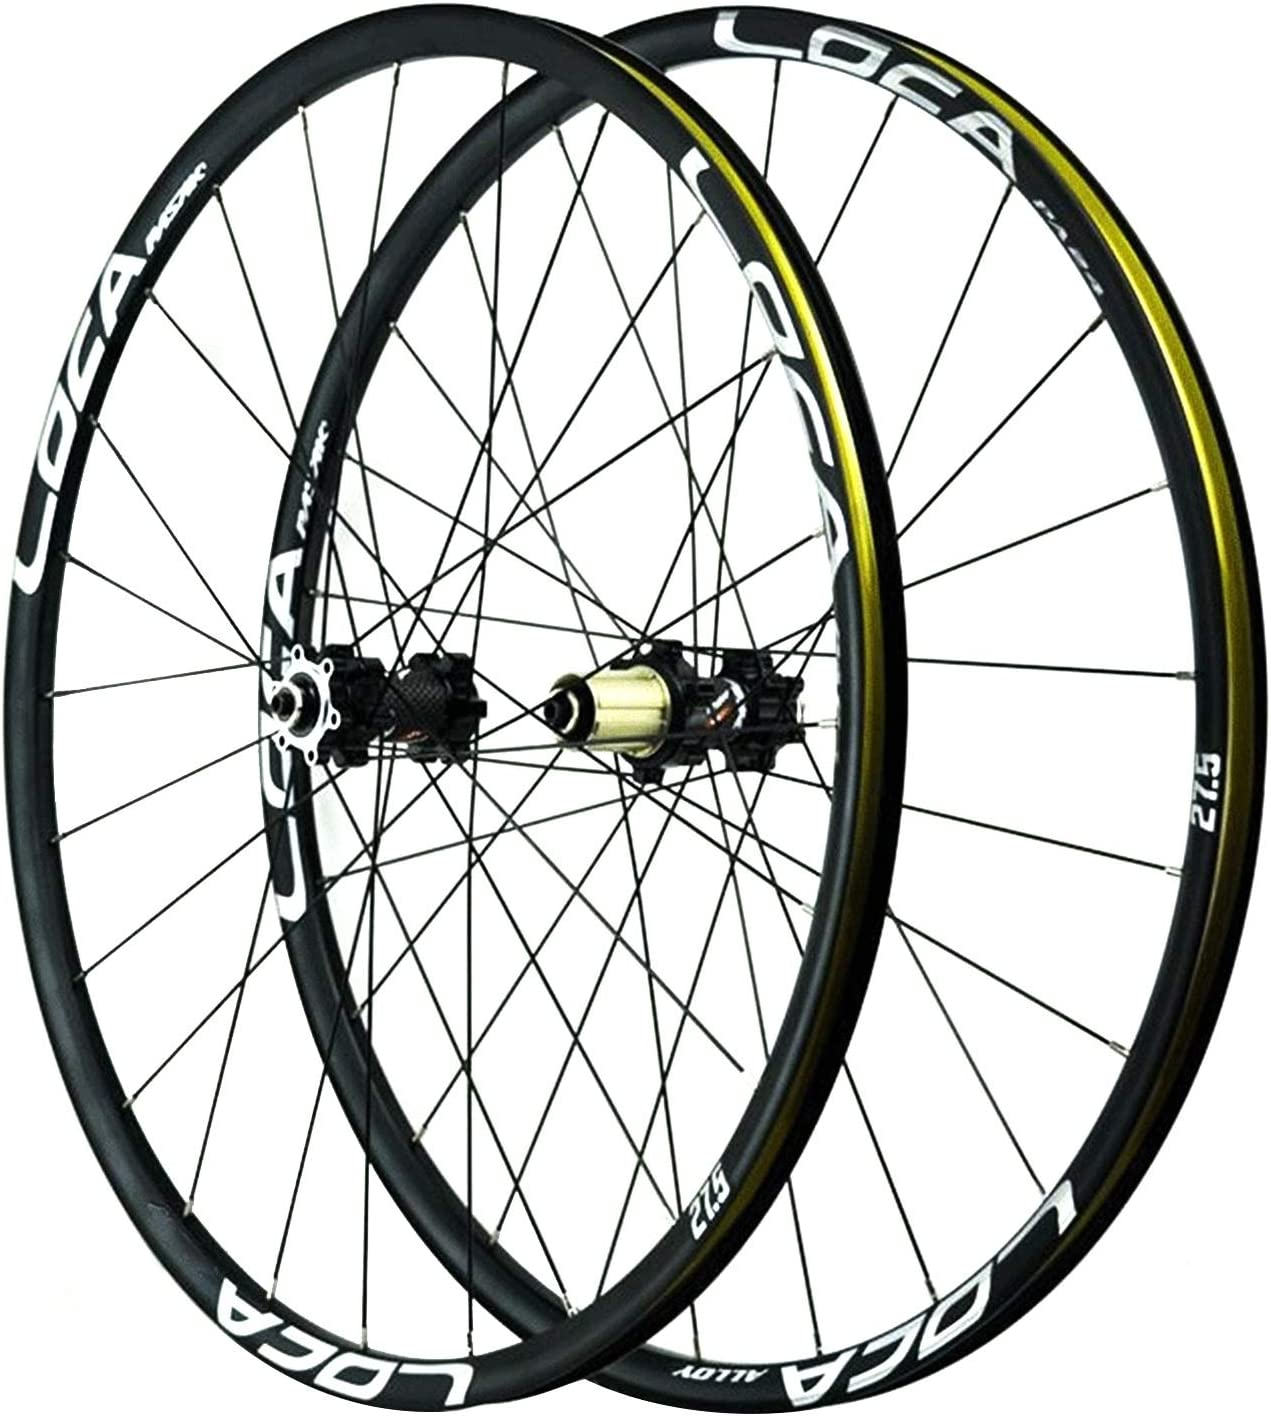 5% OFF GXFWJD Bicycle Wheelset MTB Bike New arrival Wheel Inch 29 26 27.5 Sealed Be